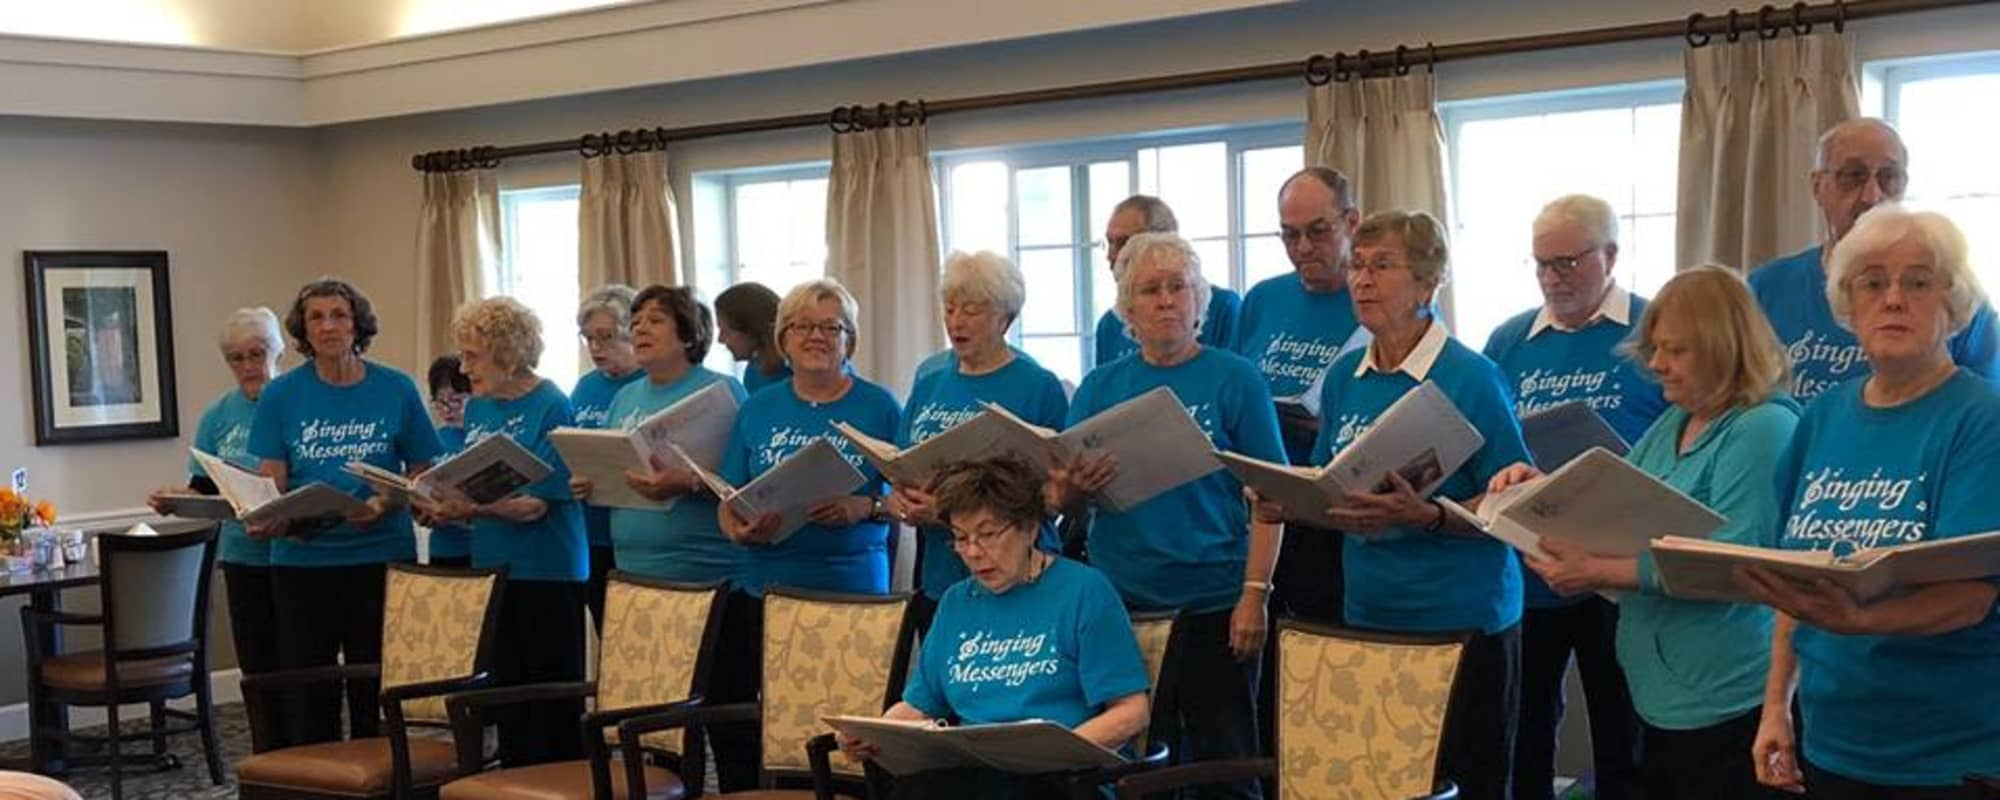 Singing group at The Commons at Dallas Ranch in Antioch, California